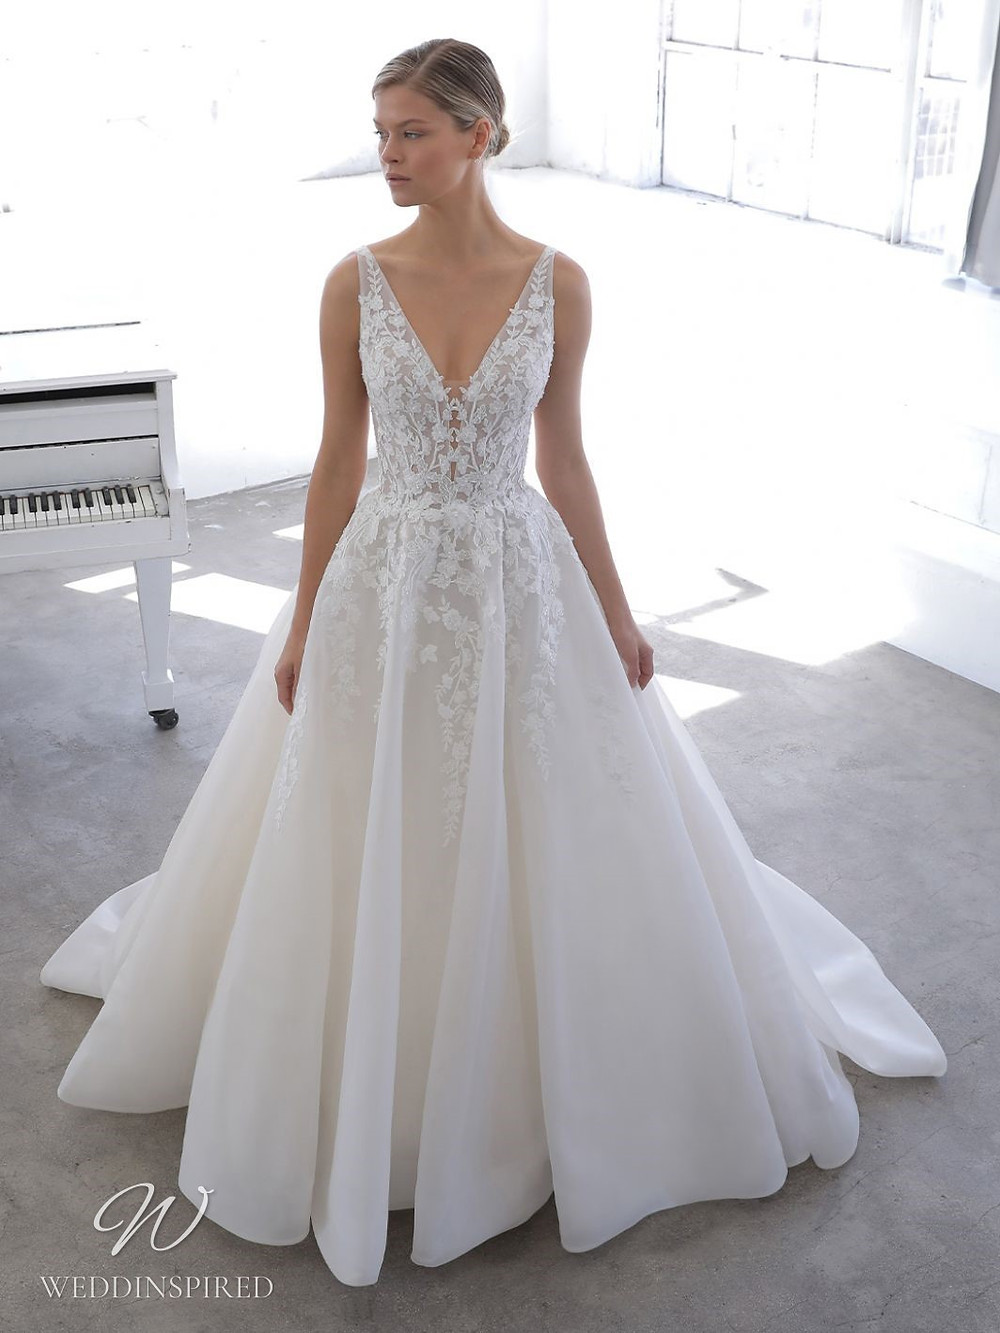 A Blue by Enzoani 2021 lace and tulle ball gown wedding dress with straps and a v neck